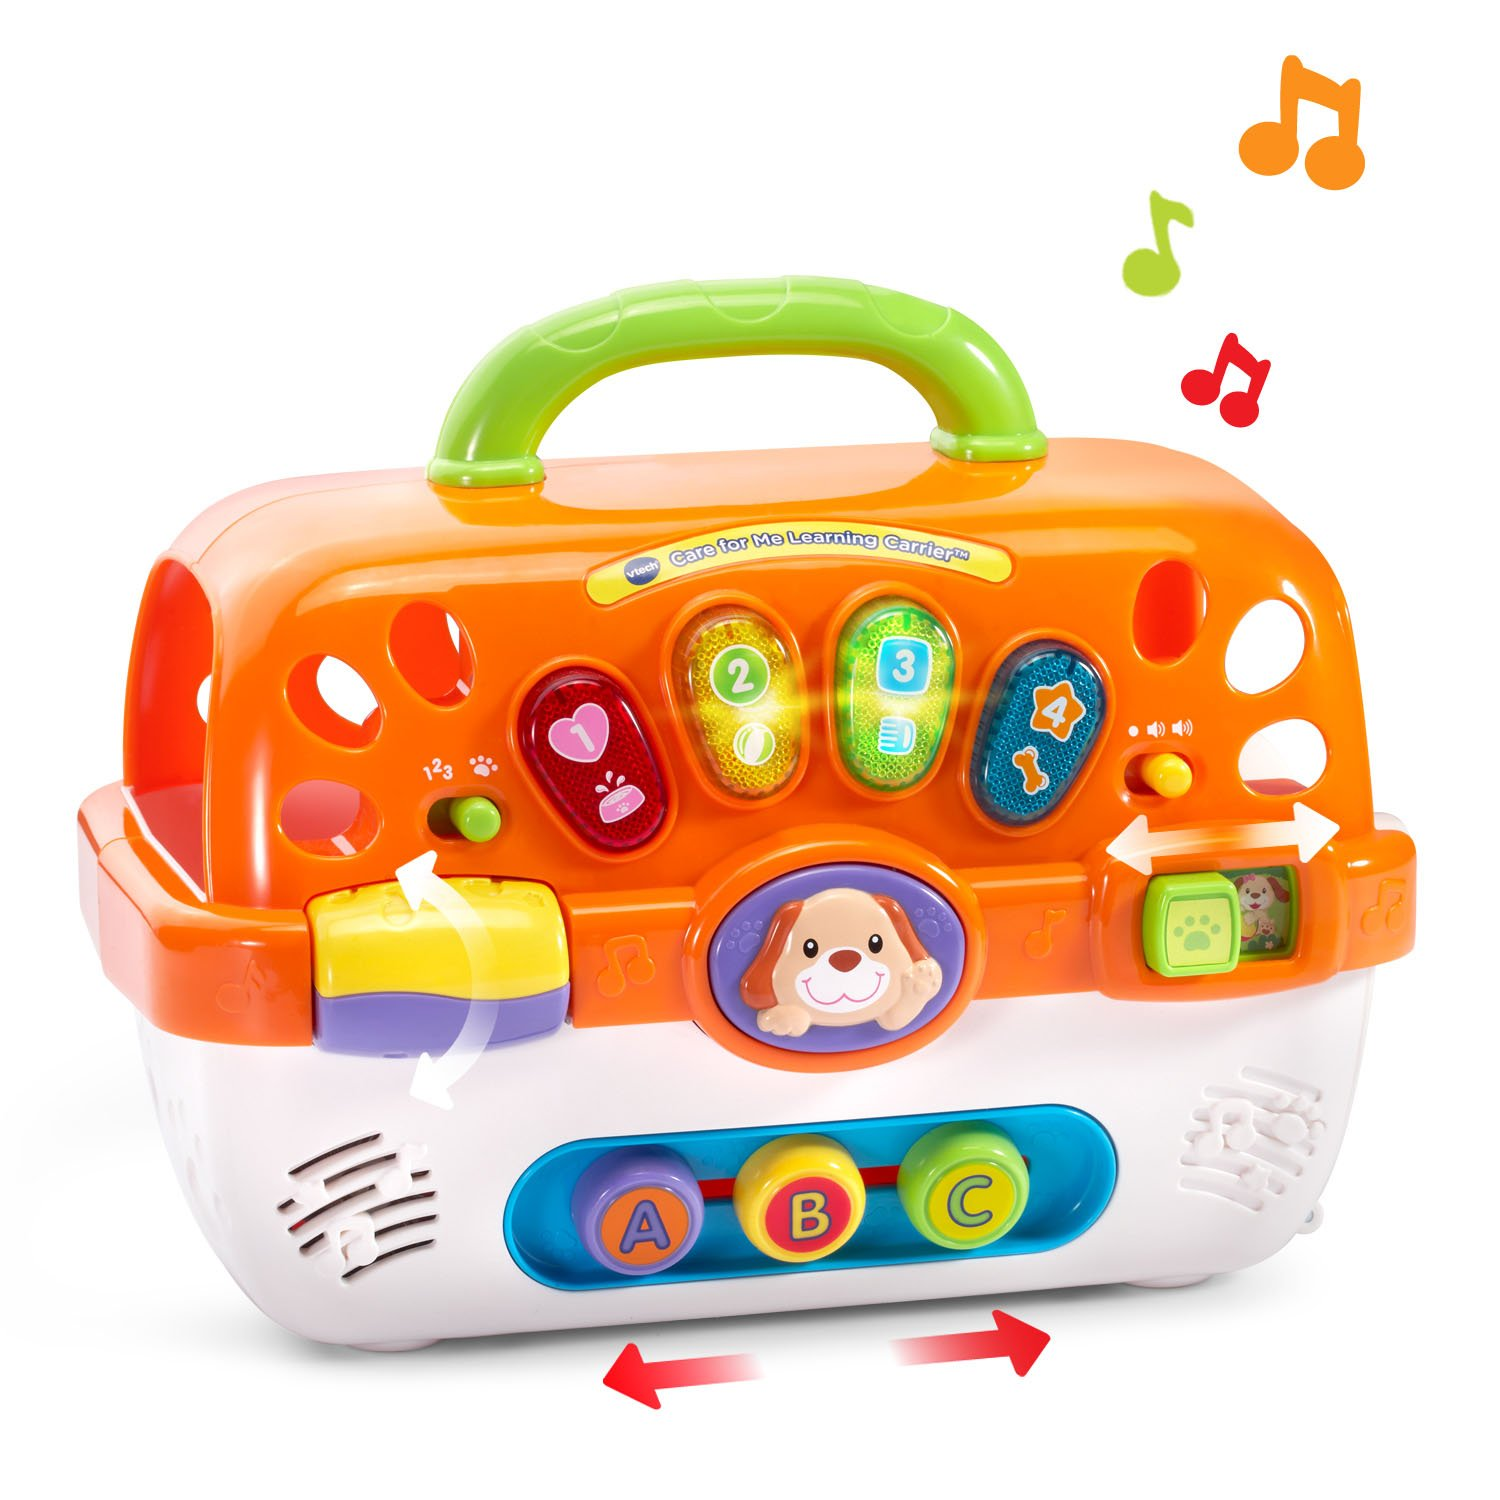 VTech Care for Me Learning Carrier Toy, Orange by VTech (Image #3)